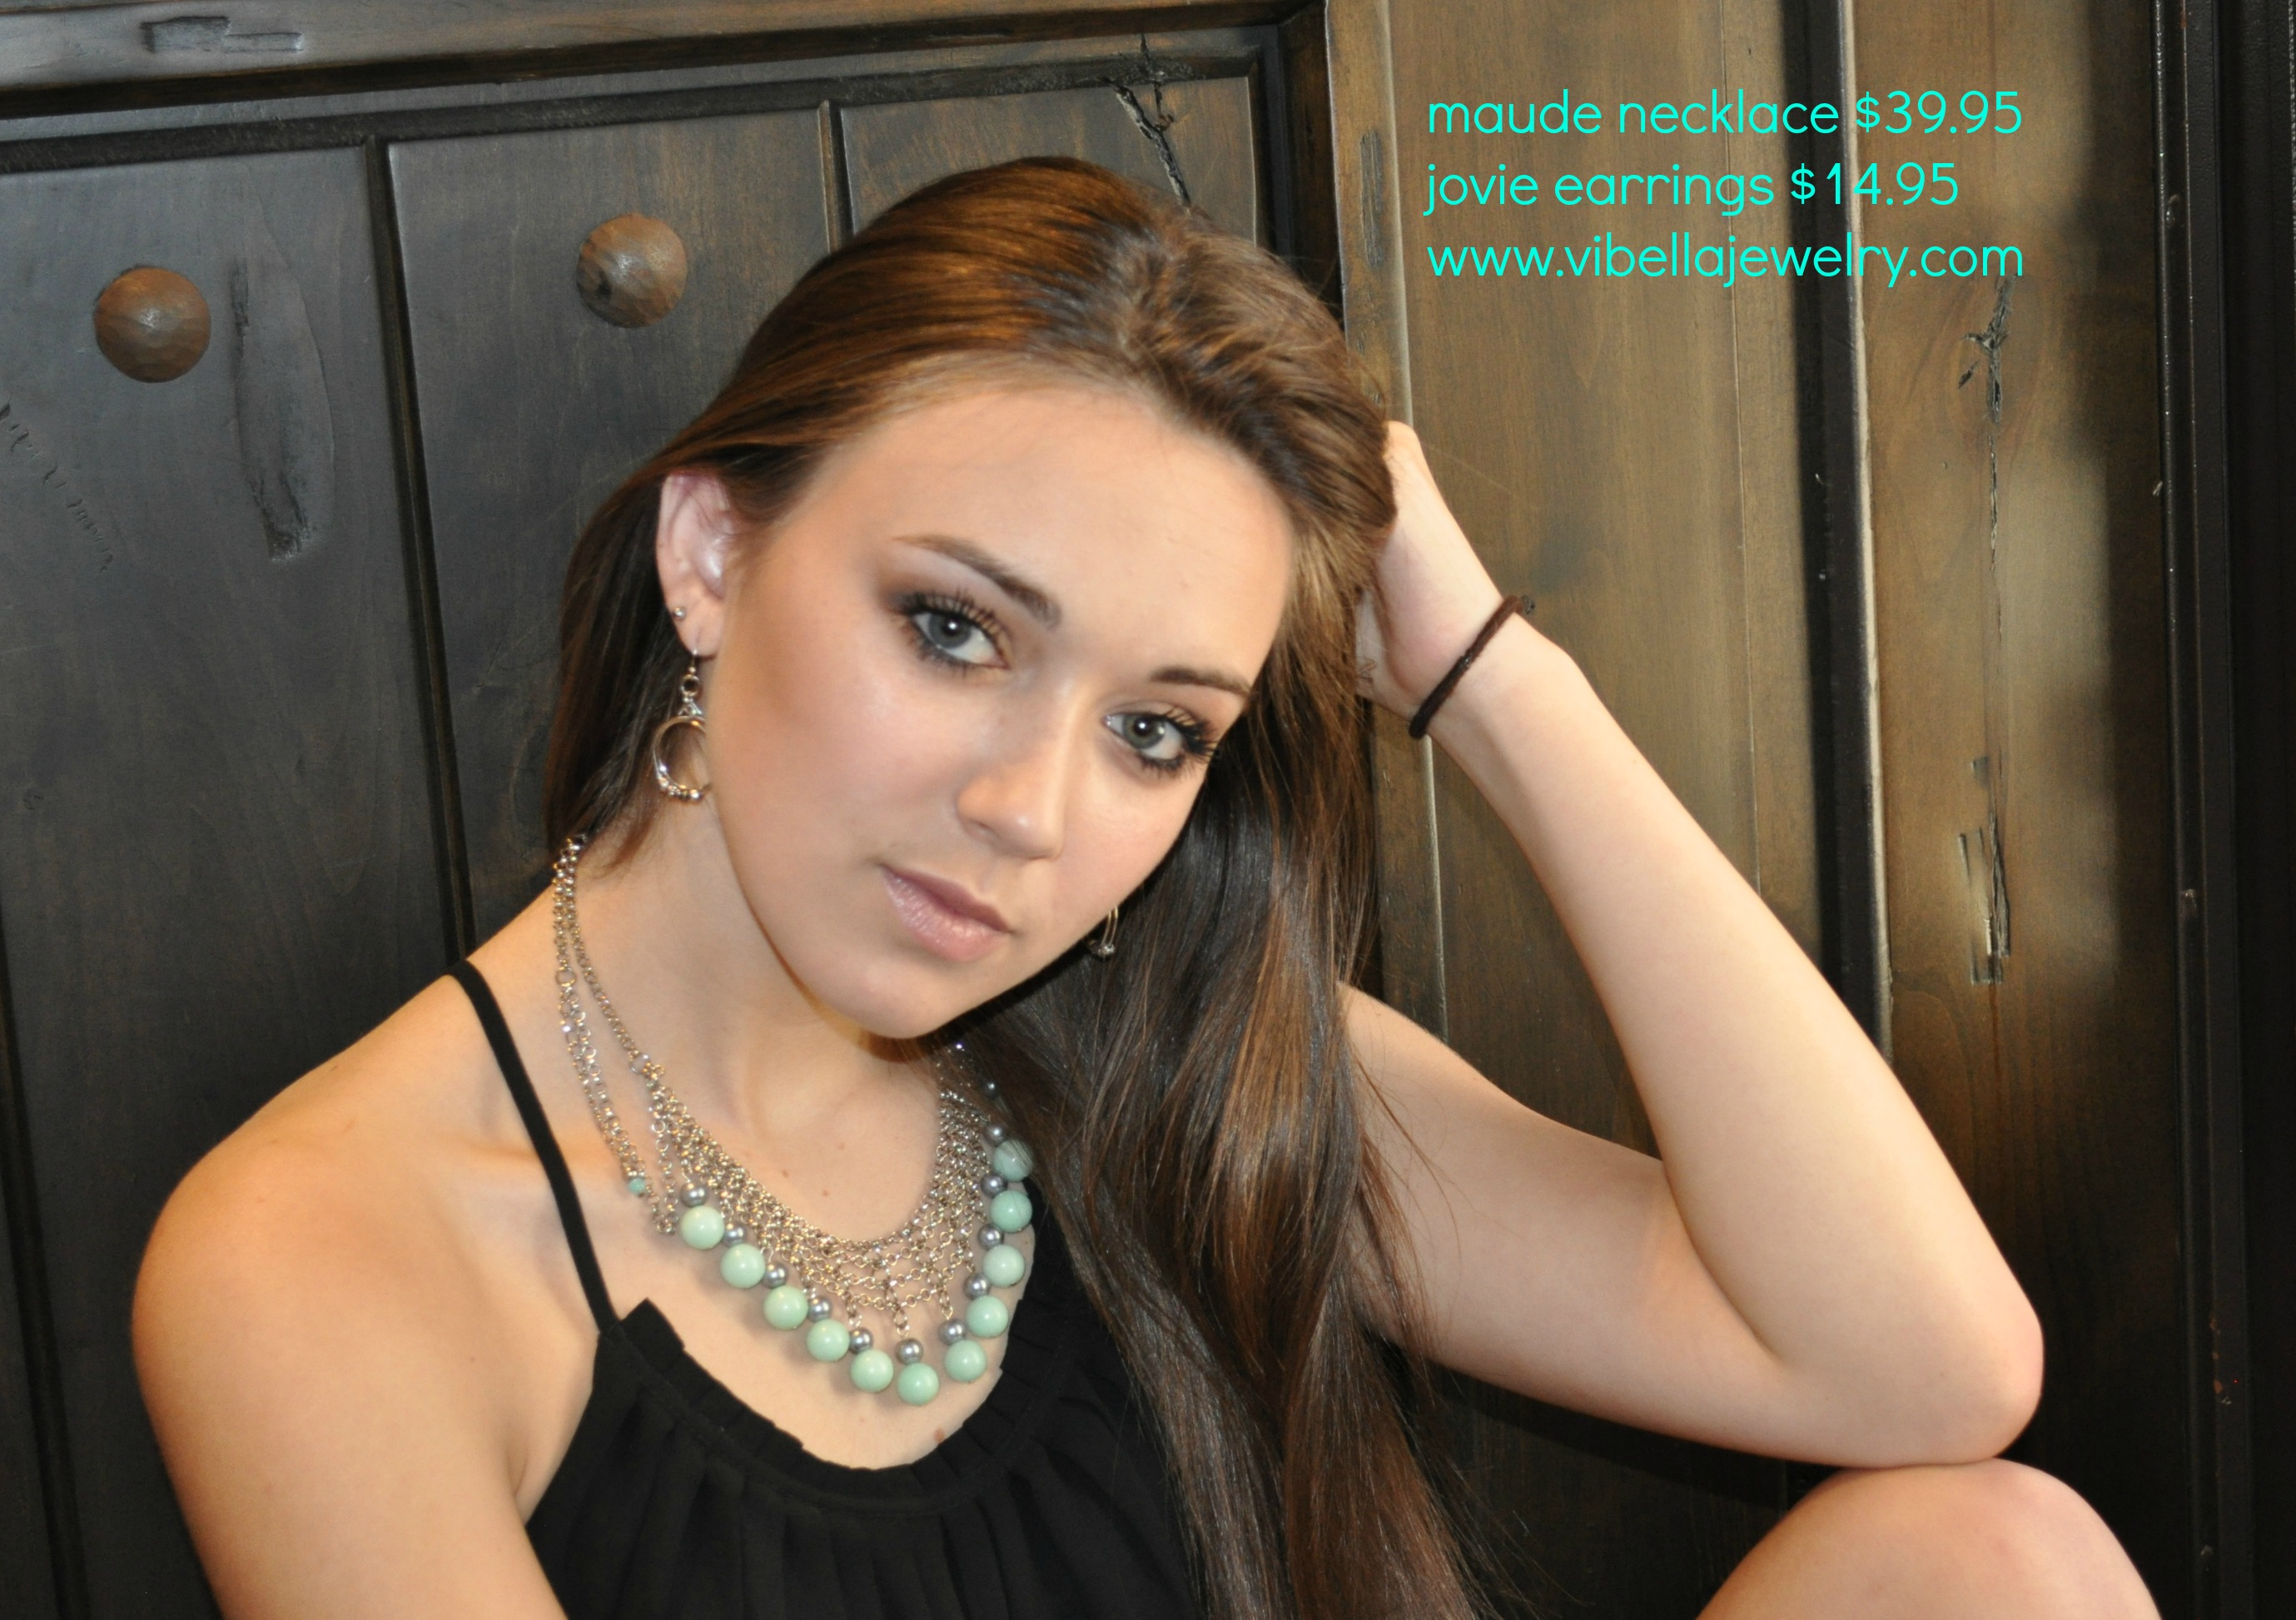 Maude Necklace | Jovie Earrings | Model Shot